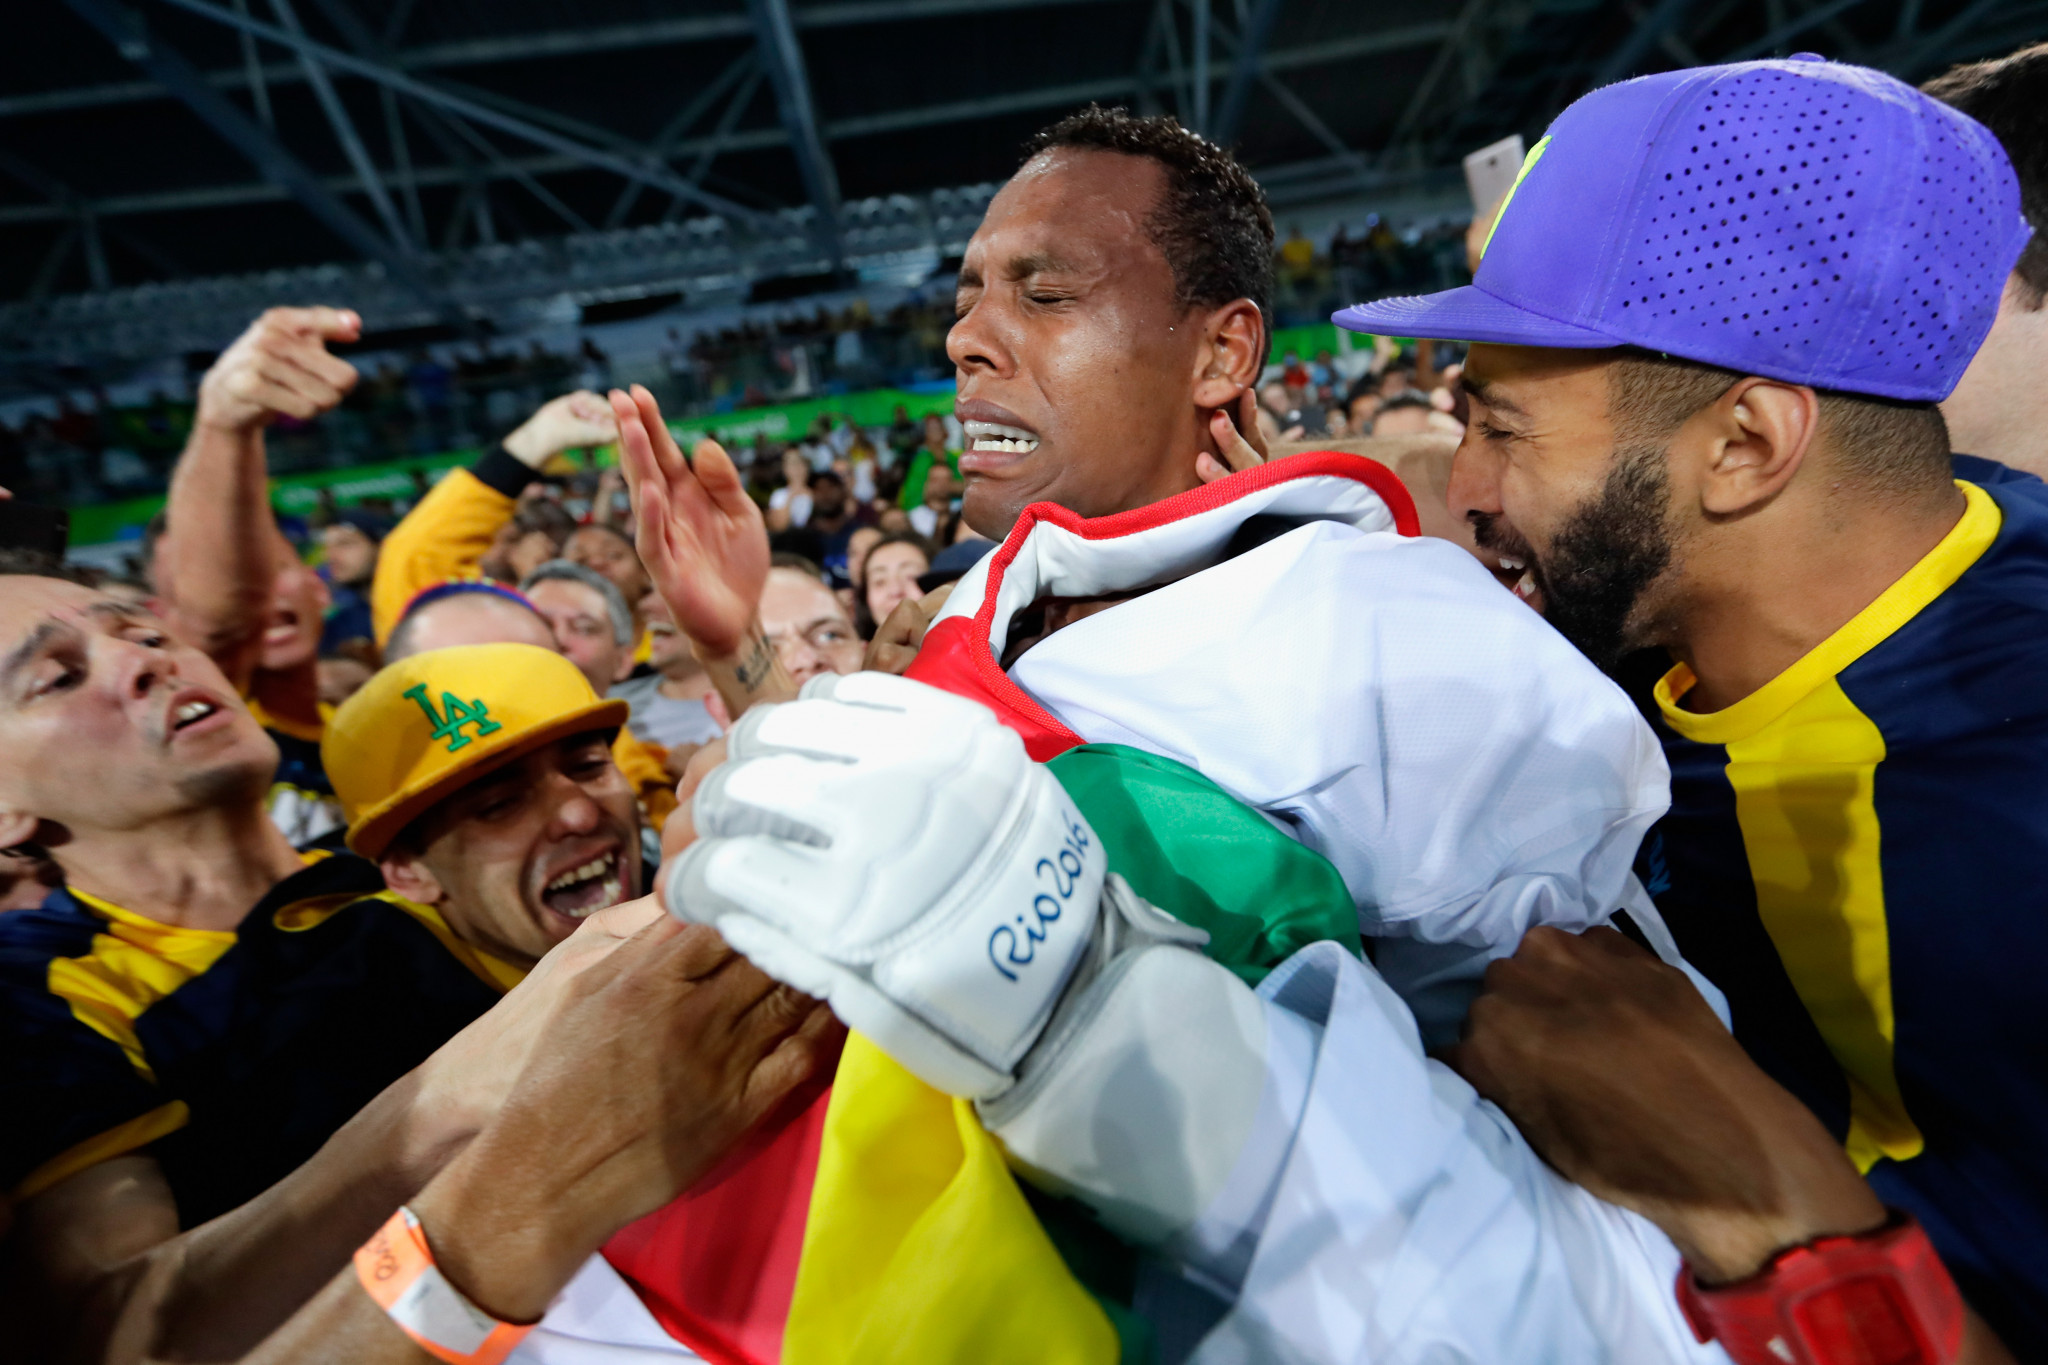 Maicon de Andrade Siqueira is mobbed as he celebrates a medal at his home Olympics ©Getty Images